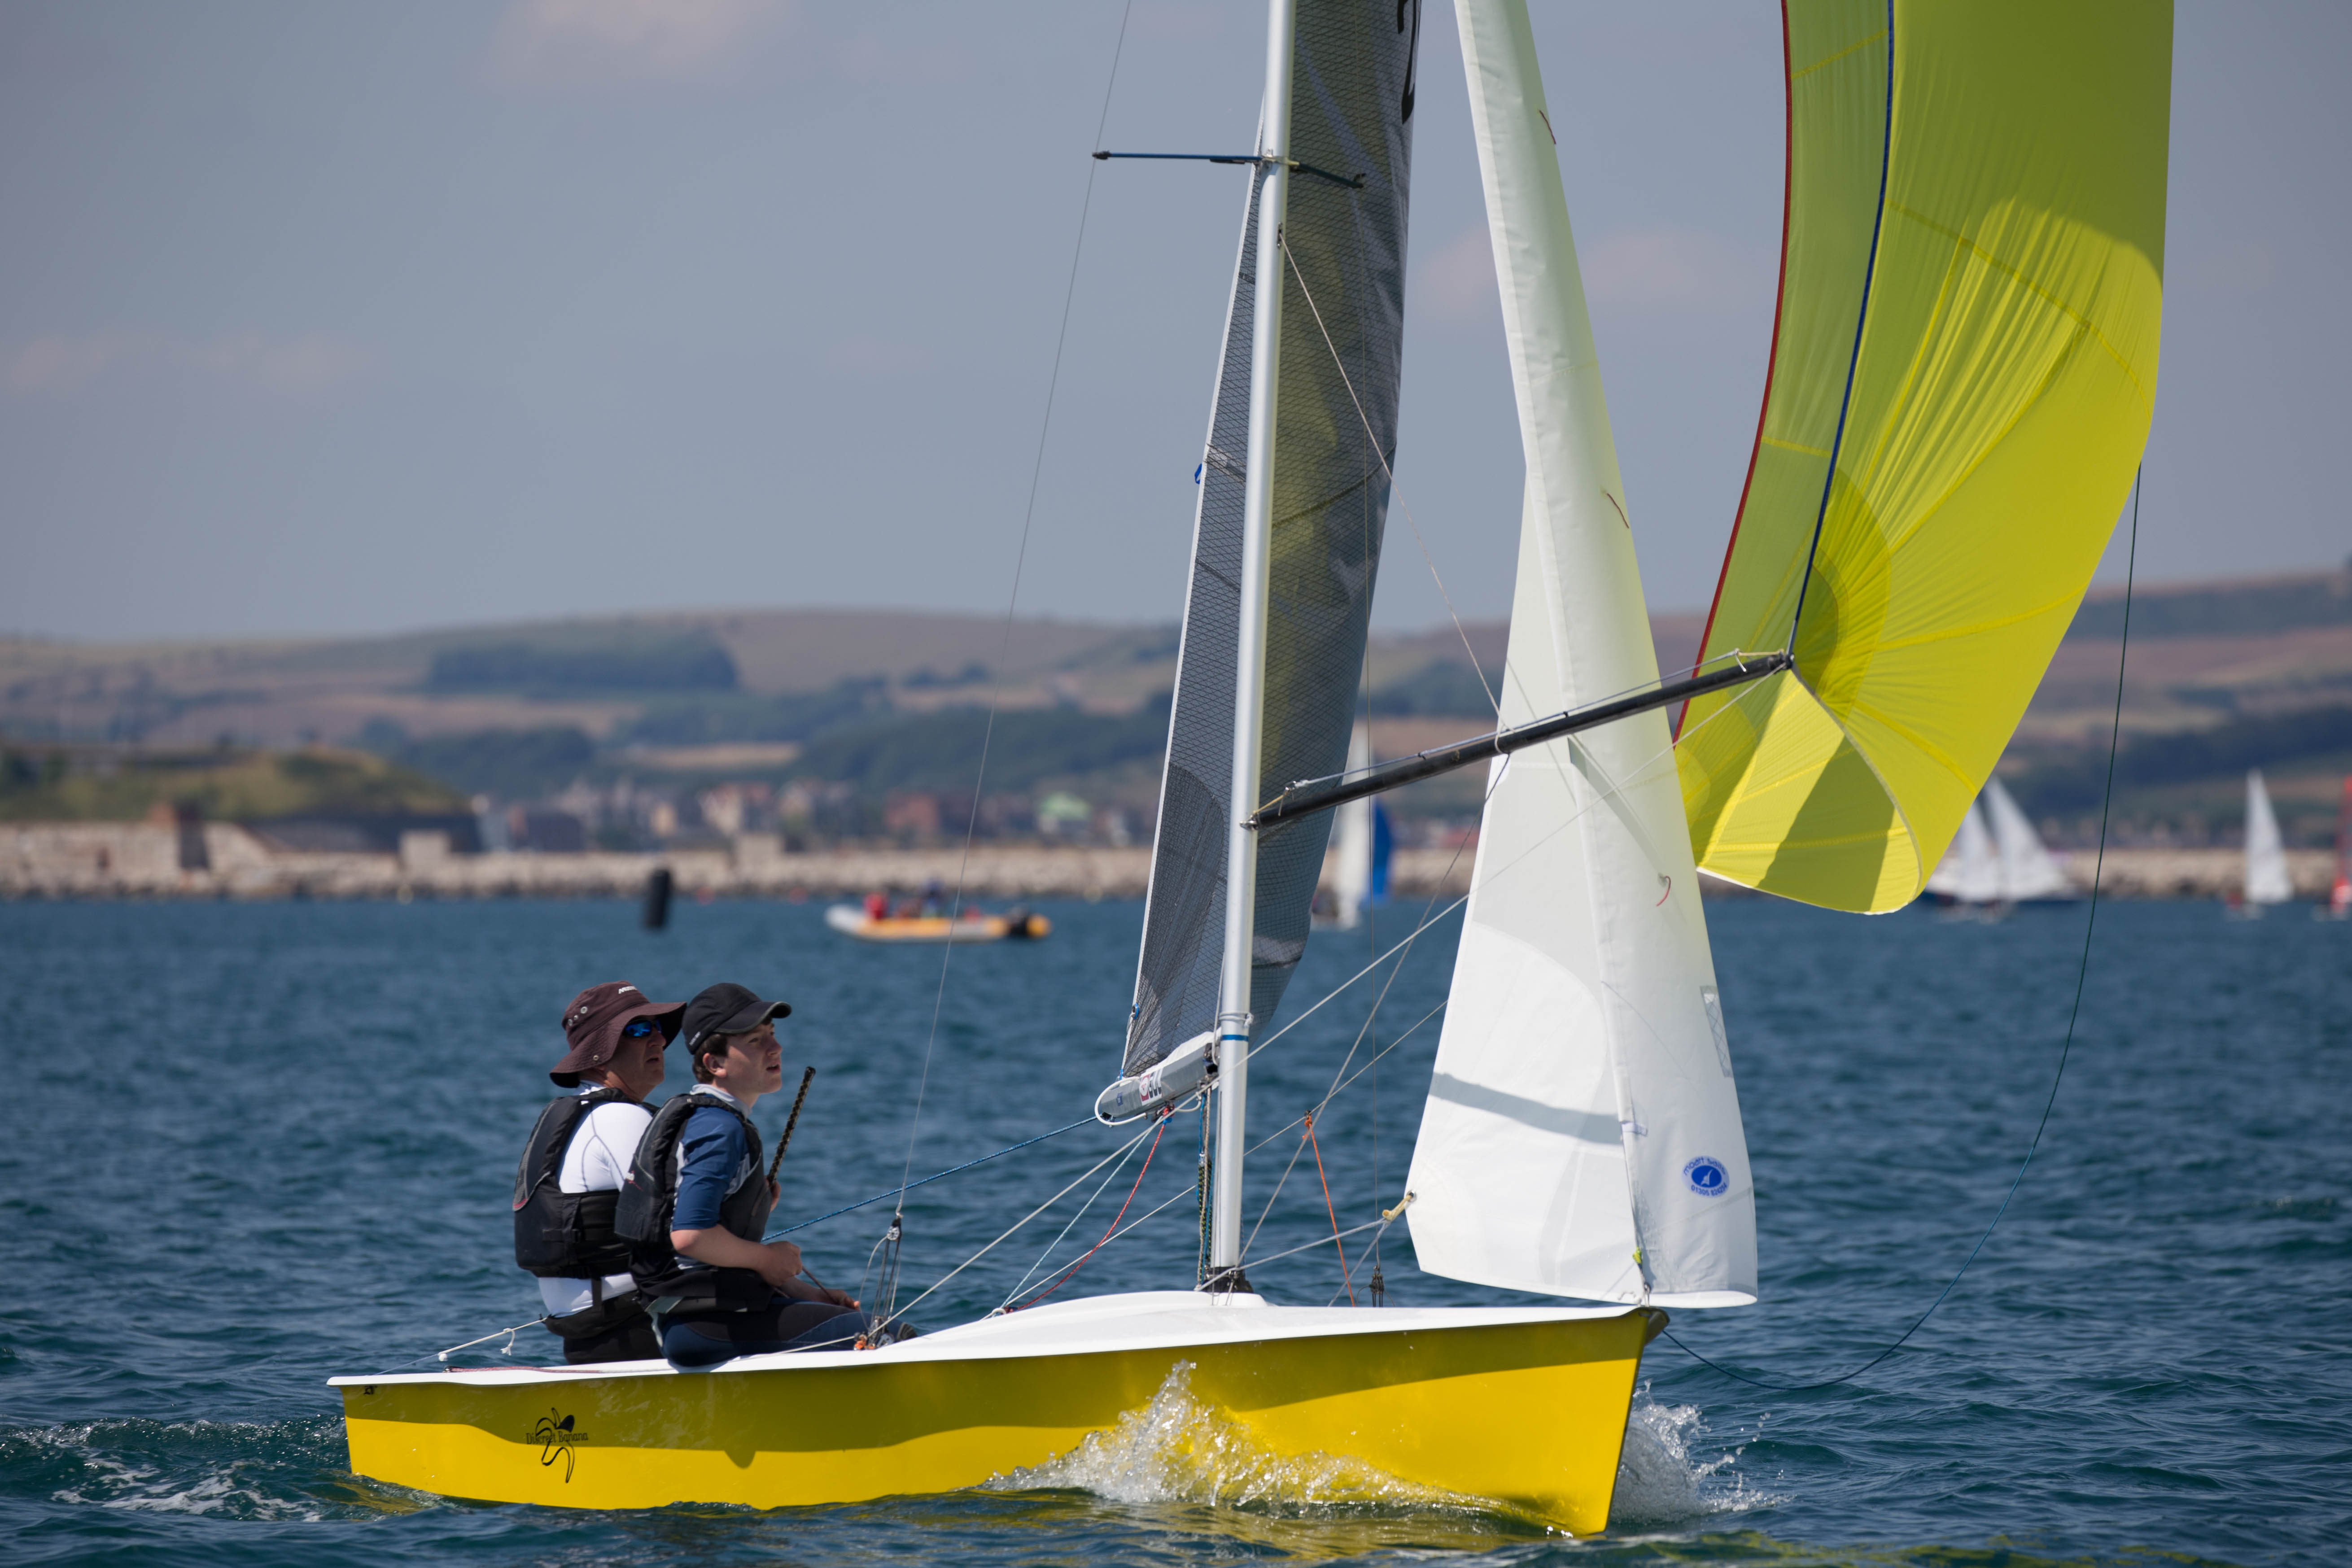 Scorpion sailing at the Weymouth dinghy regatta 2018